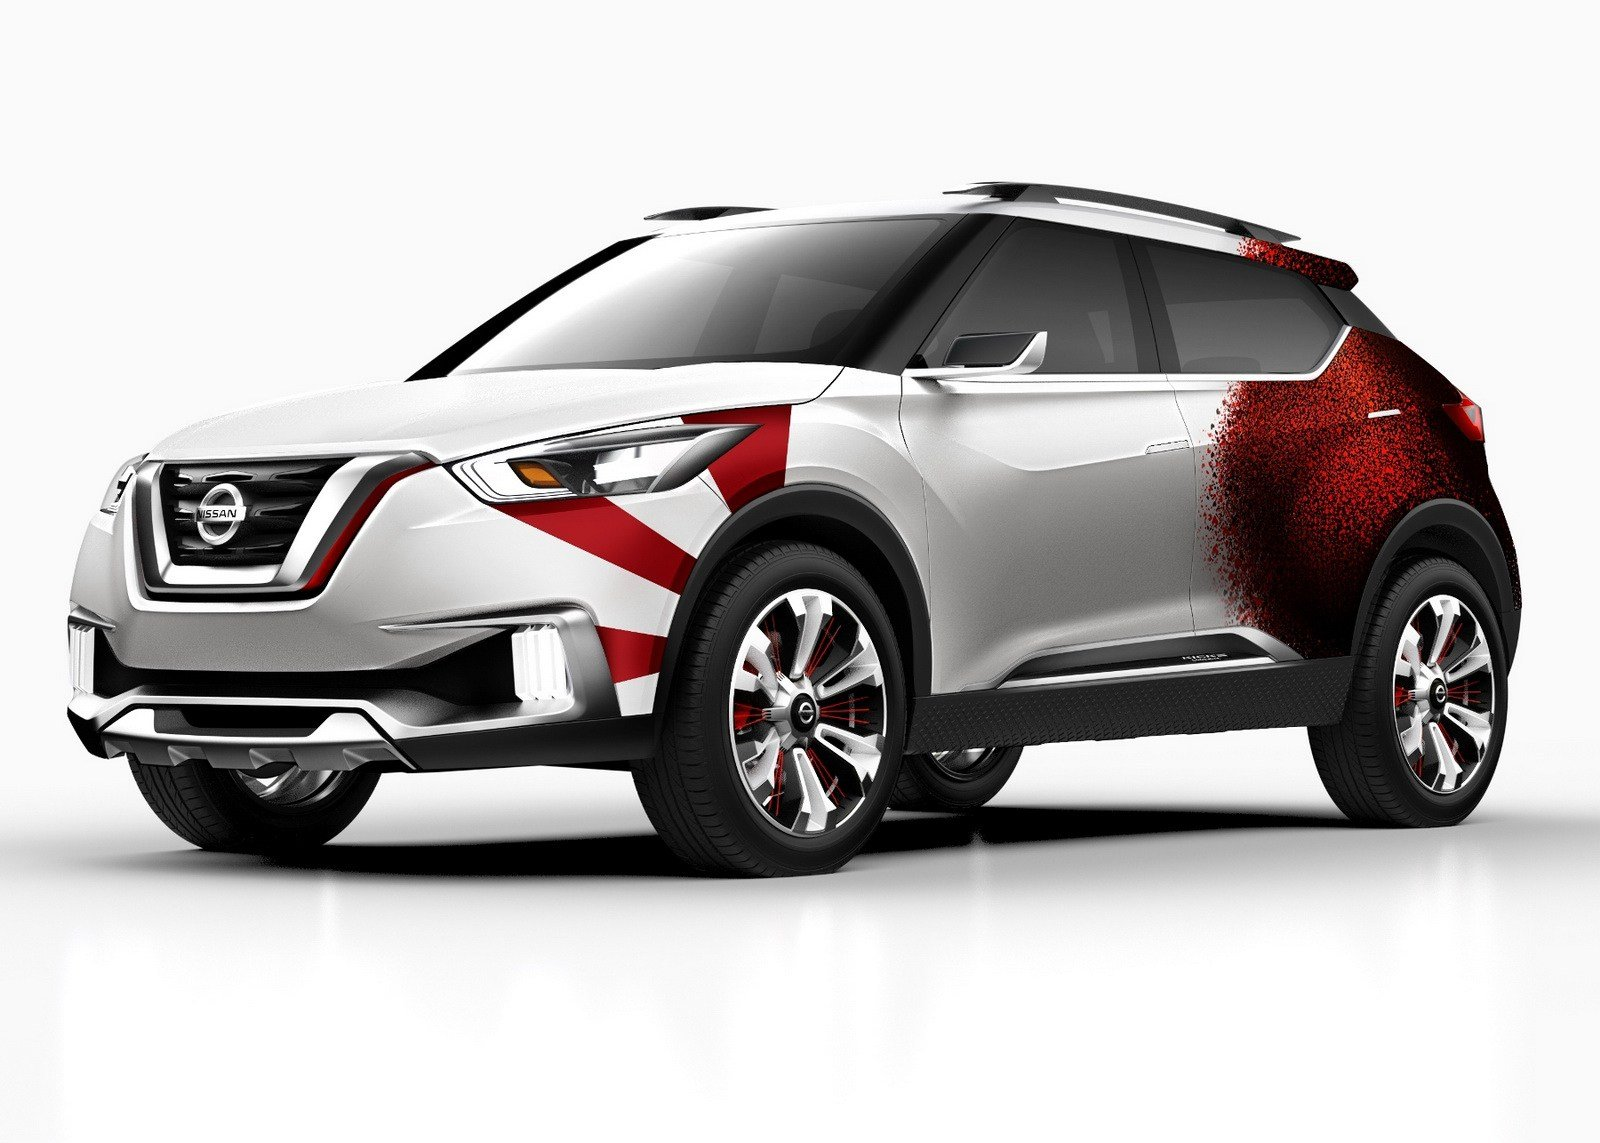 New Nissan Kicks Suv Concept Photo Gallery Car Gallery Suv On This Month